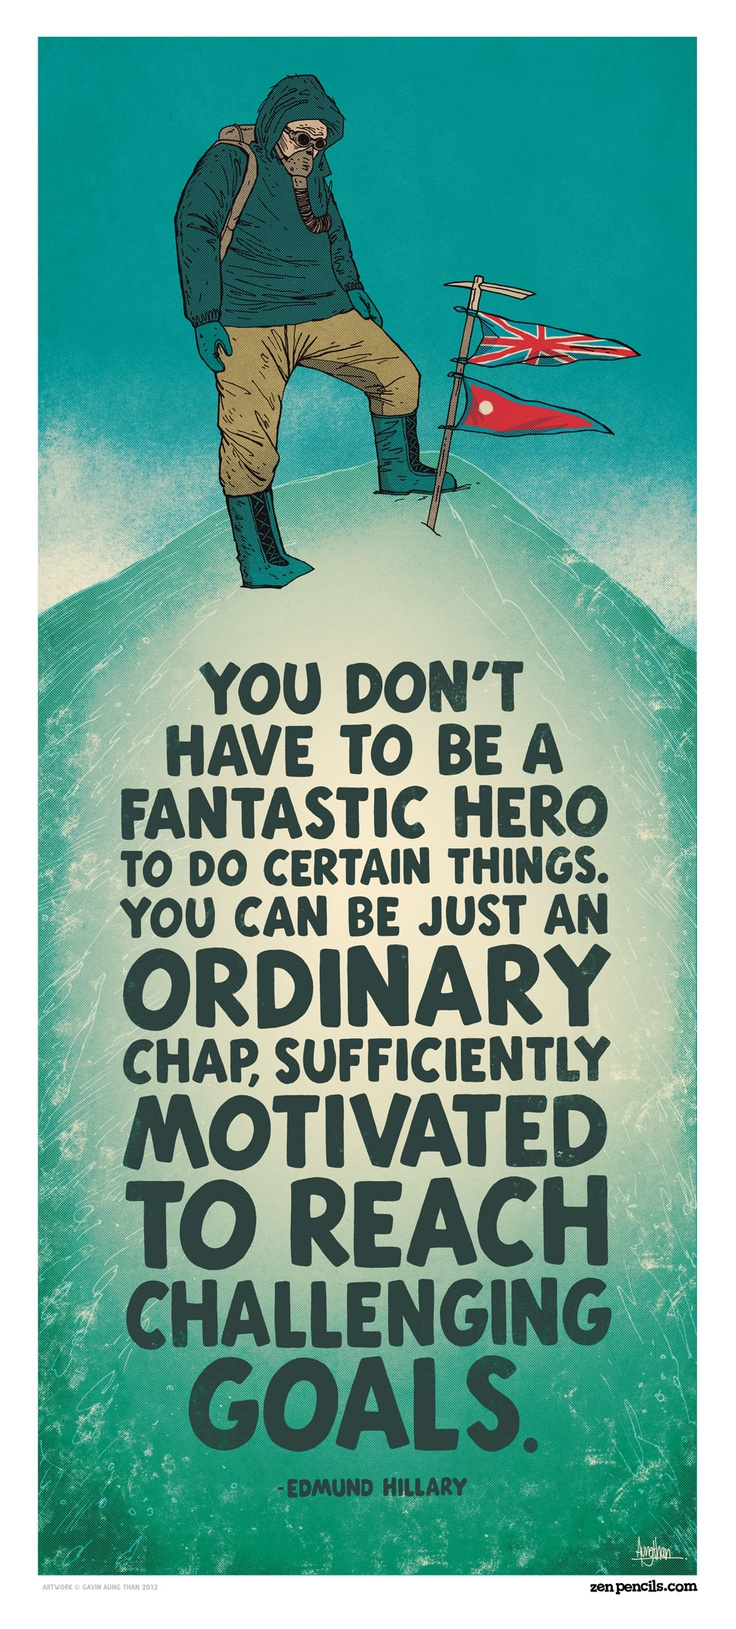 You don't have to be a fantastic hero to do certain things. You can be just an ordinary chap, sufficiently motivated to reach challenging goals. - Edmund Hillary. Artwork by Gavin Aung Than. ZenPencils.comPencil, Edmund Hillary, Heroes, Motivation Quotes, Art Prints, Quotes Posters, Education Quotes, Quotable Quotes, Inspiration Quotes